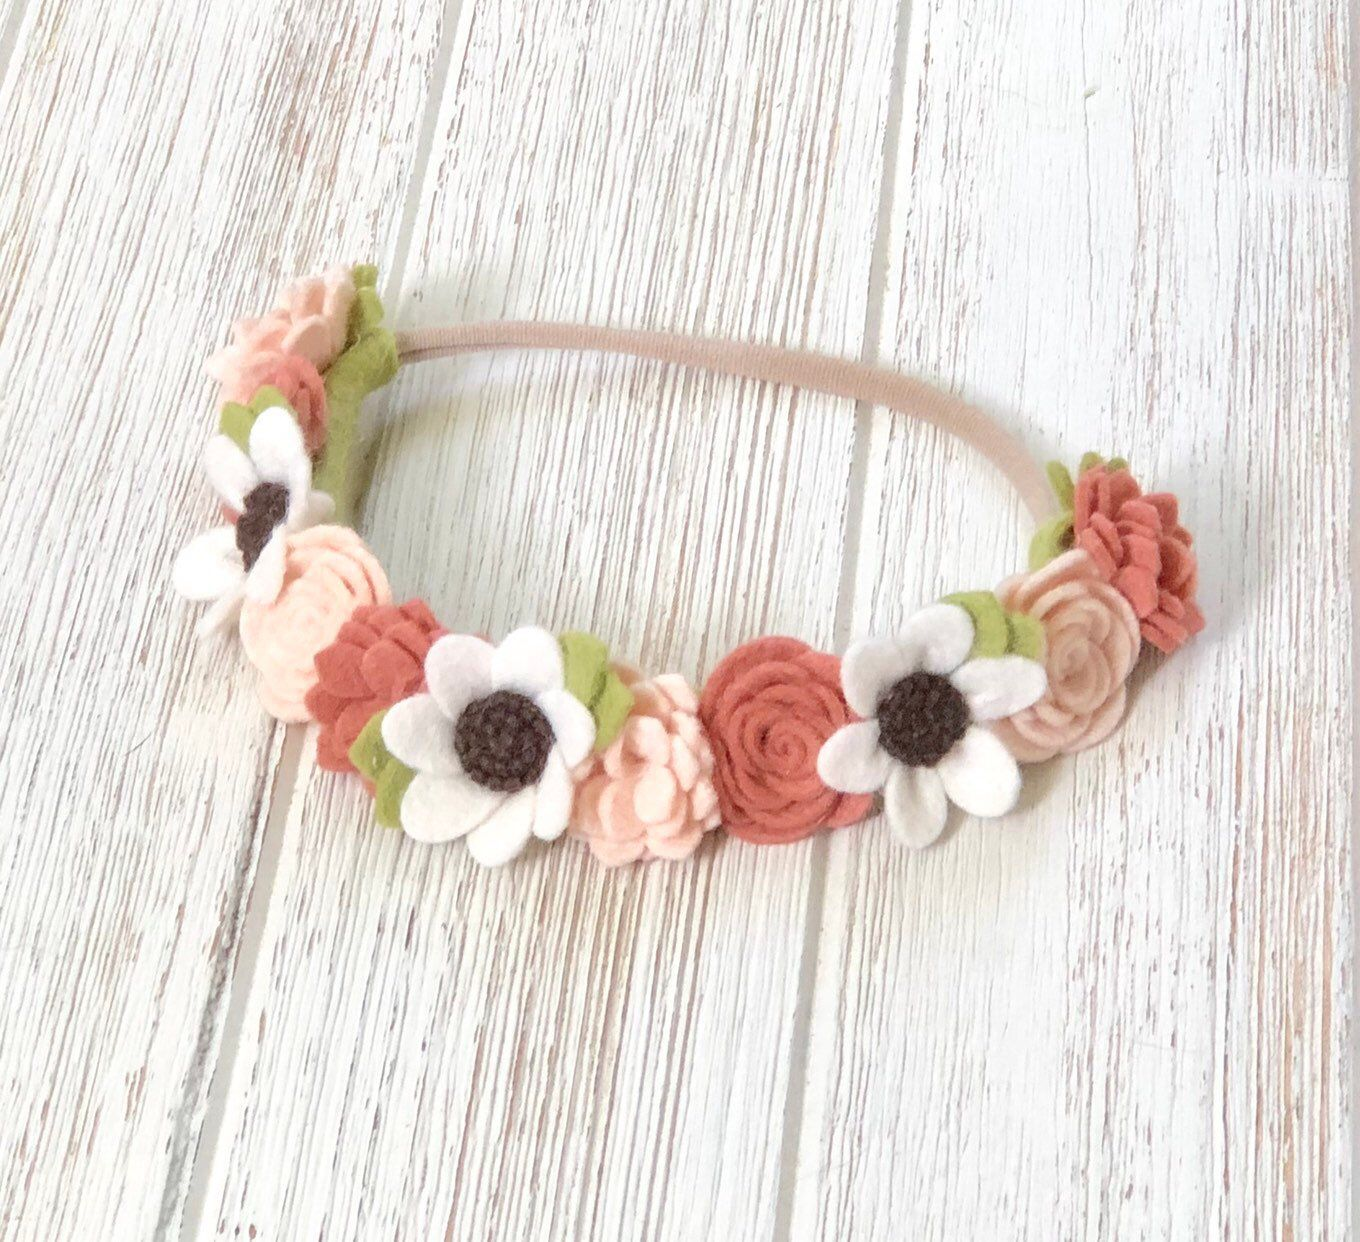 Felt flower headband, felt flower crown, baby girl headband, pink flower headband, blush floal crown, newborn headband, baby photo prop #feltflowerheadbands